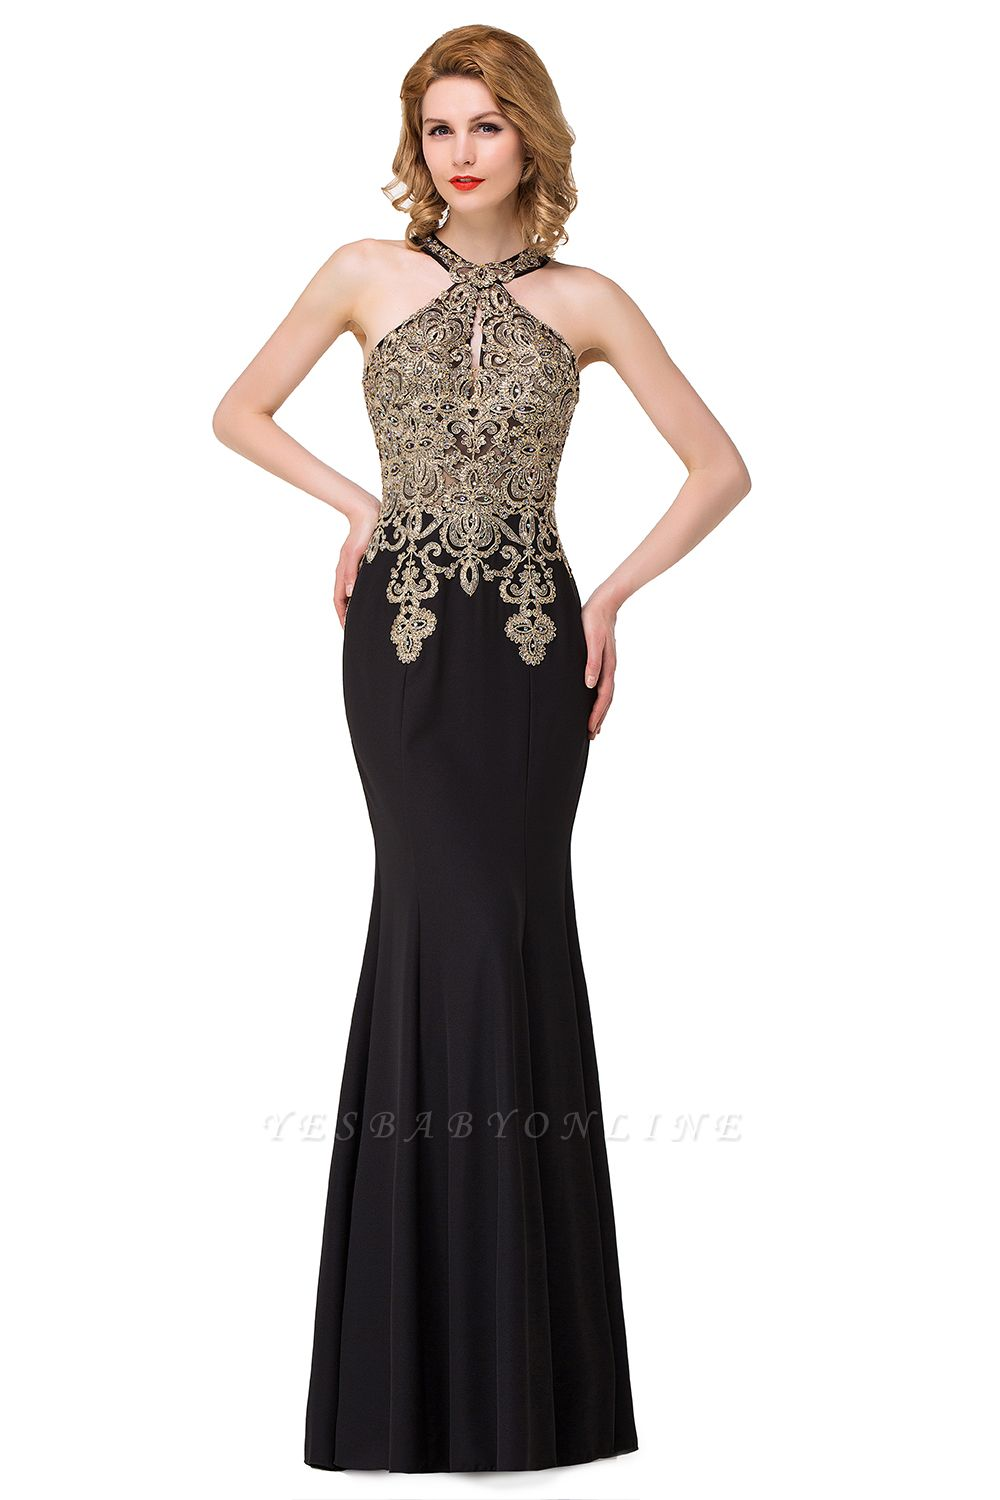 Sleeveless Halter Appliques Black Crystal Mermaid Sexy Prom Dress